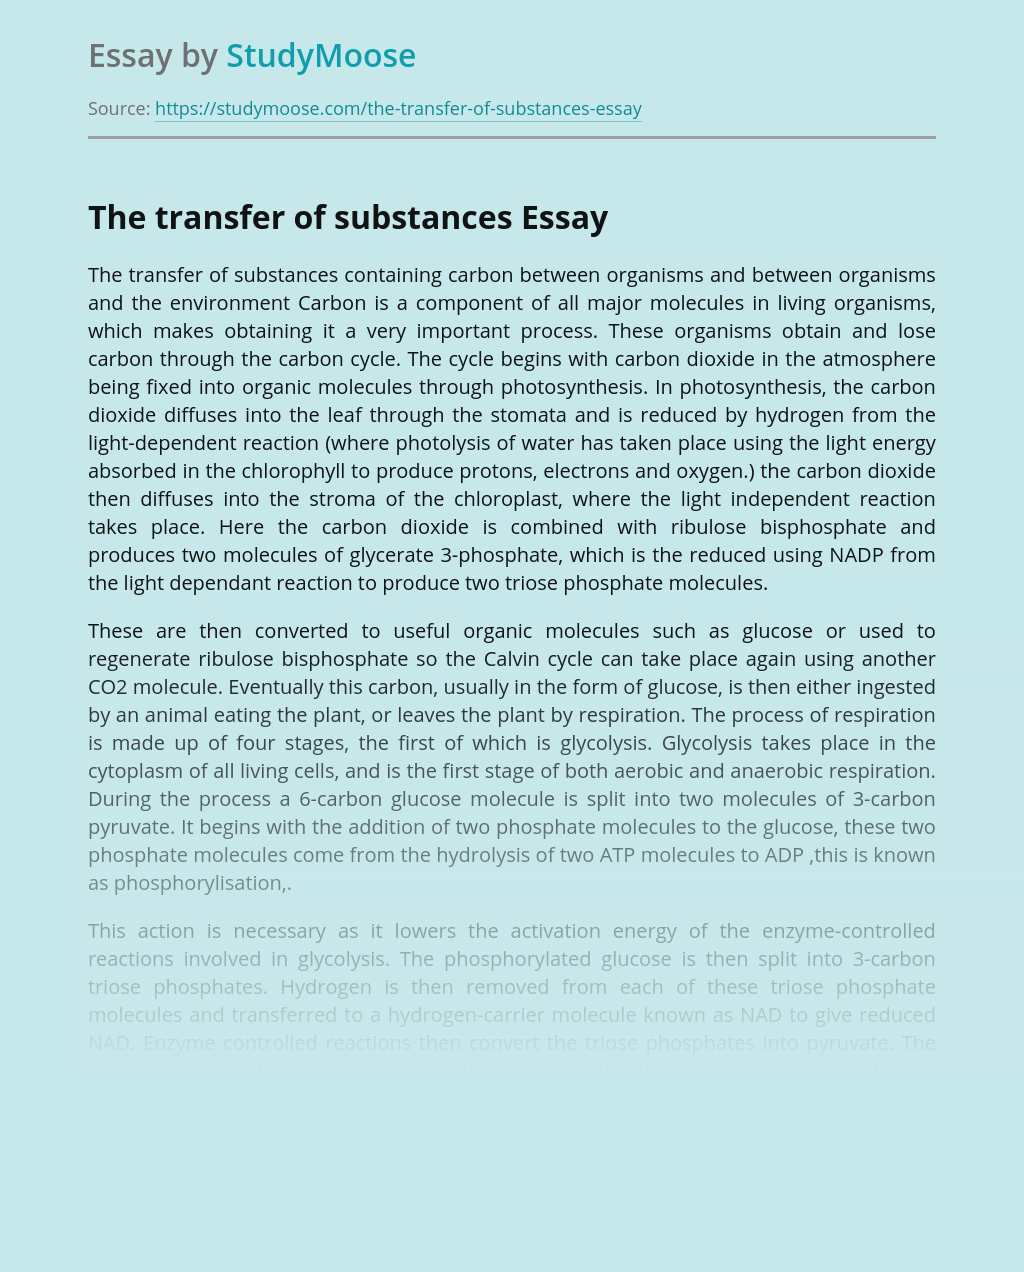 The transfer of substances